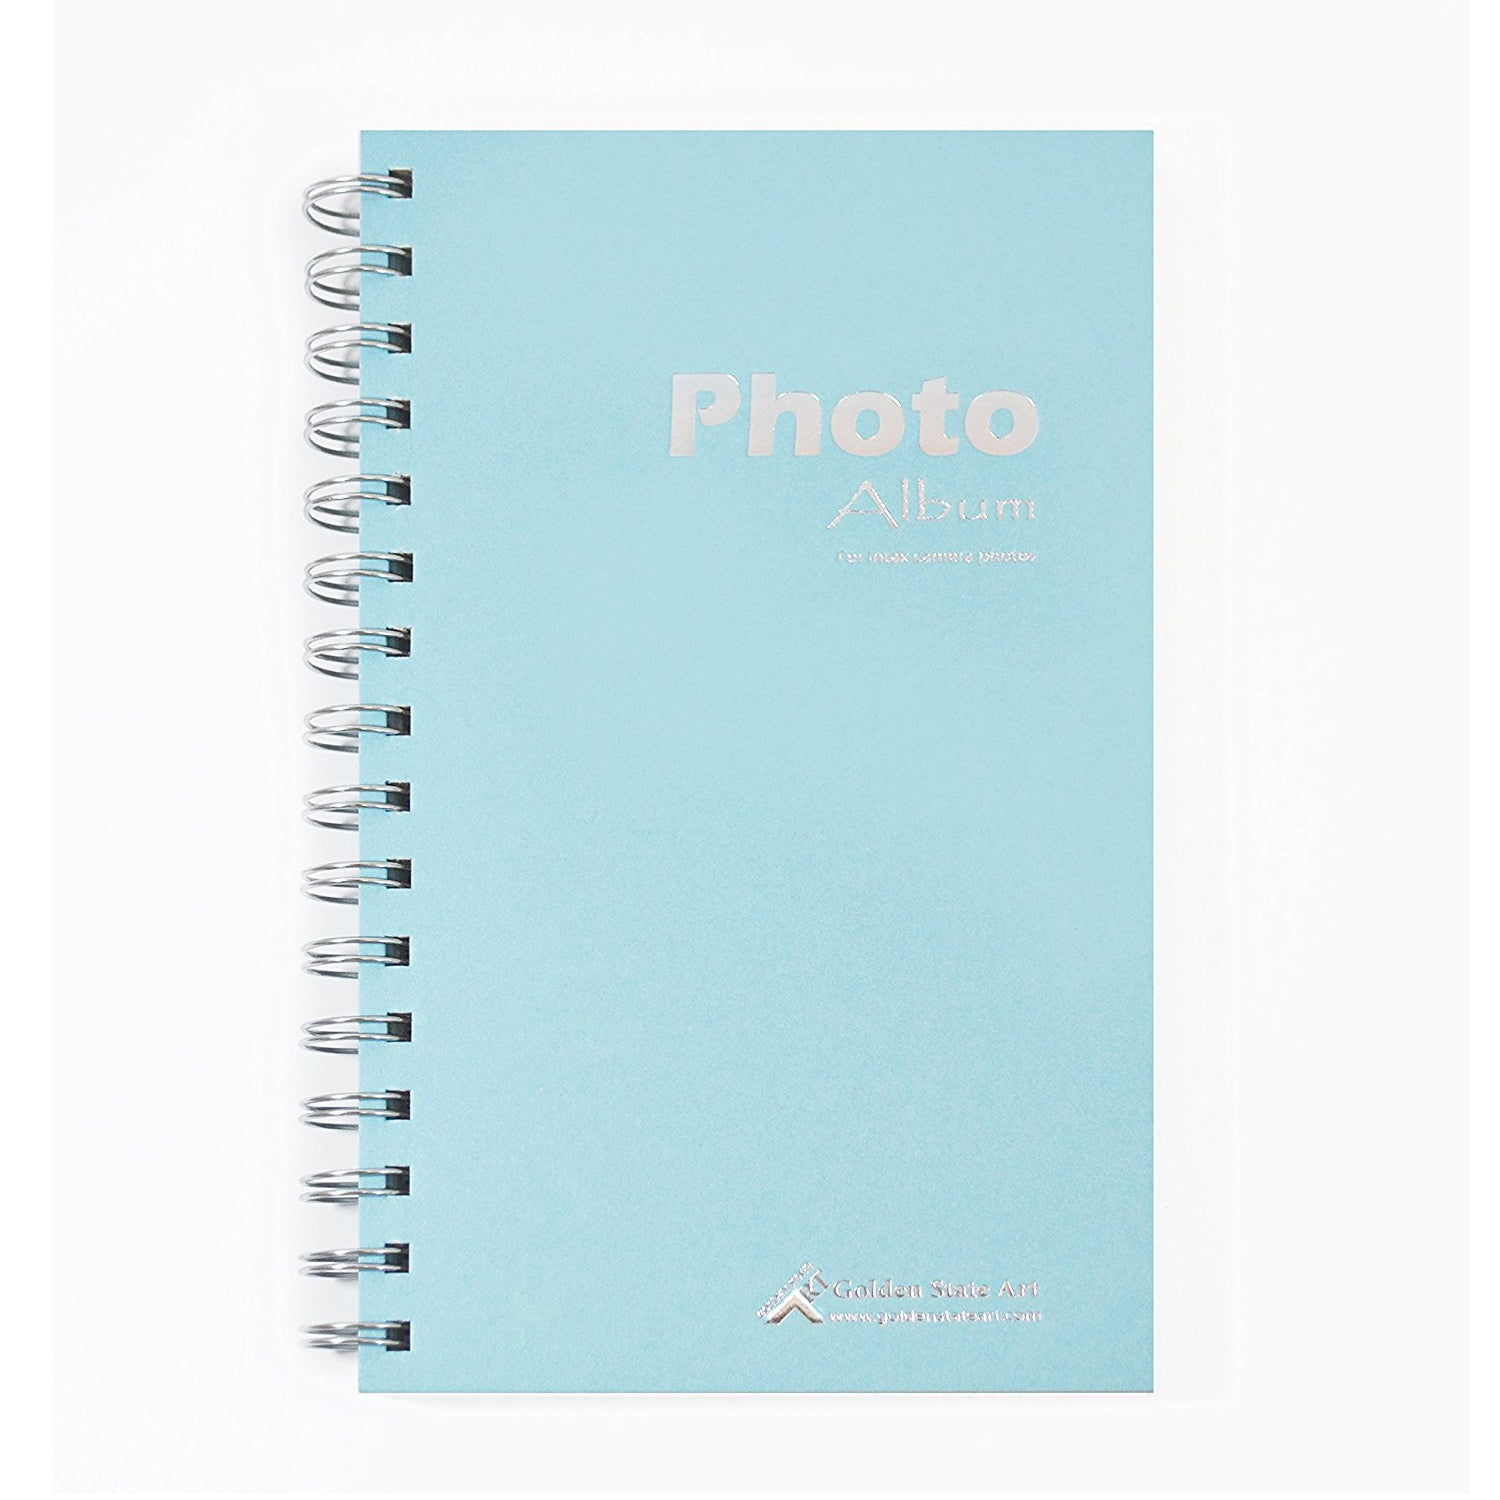 """Golden State Art, Instax Frames Collection,Photo Album Book style 60 Pocket for Fuijufilm Instax Mini 7S 8 70 90 25 50S 8+ Film (Light Blue) """